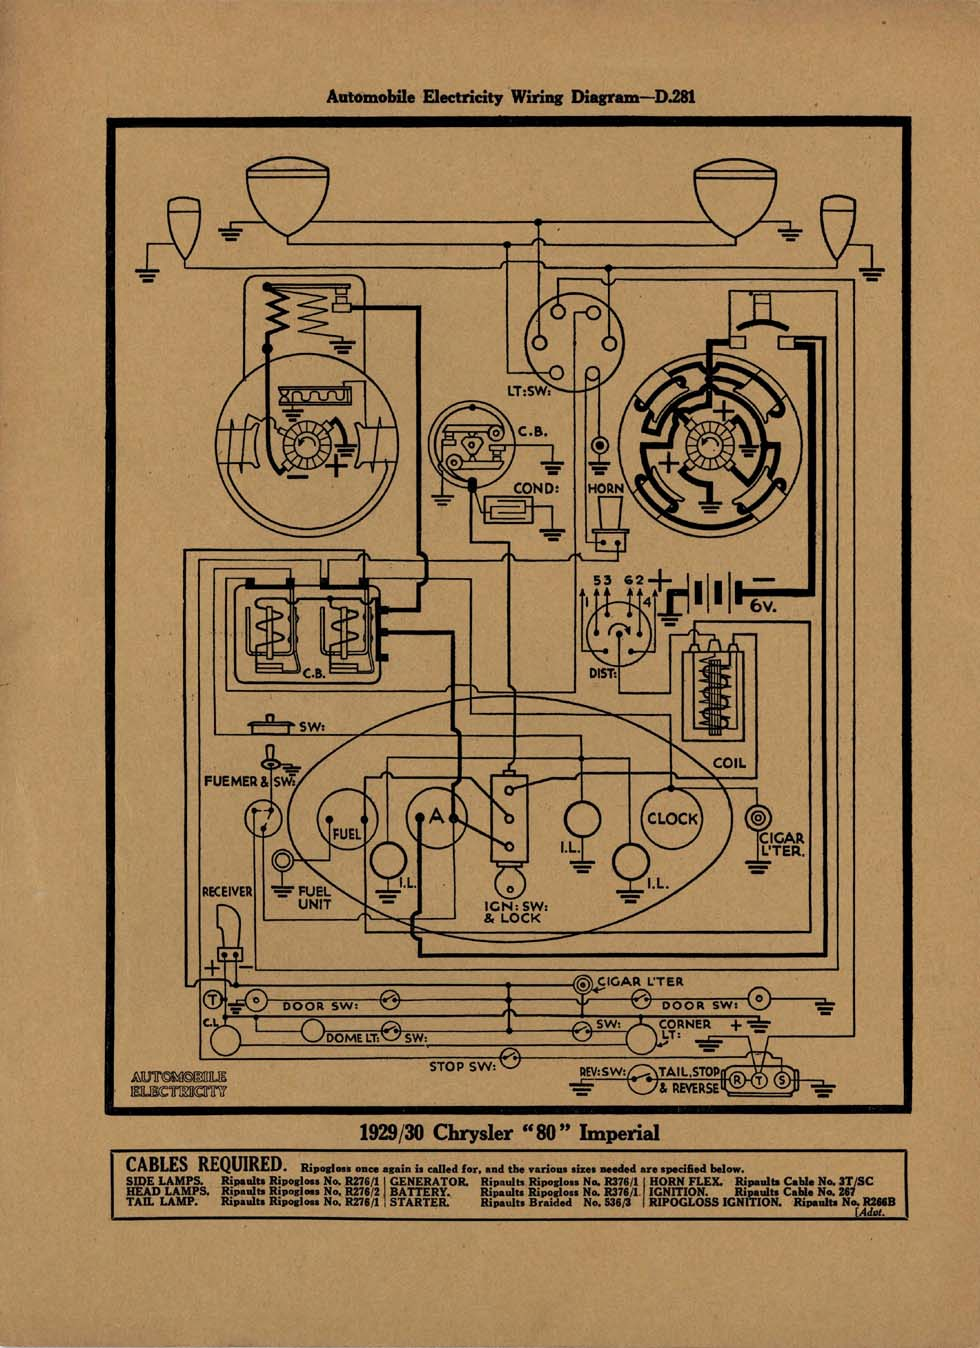 1929 1930 chrysler imperial wiring diagram rh imperialclub com Residential Electrical Wiring Diagrams Basic Electrical Wiring Diagrams